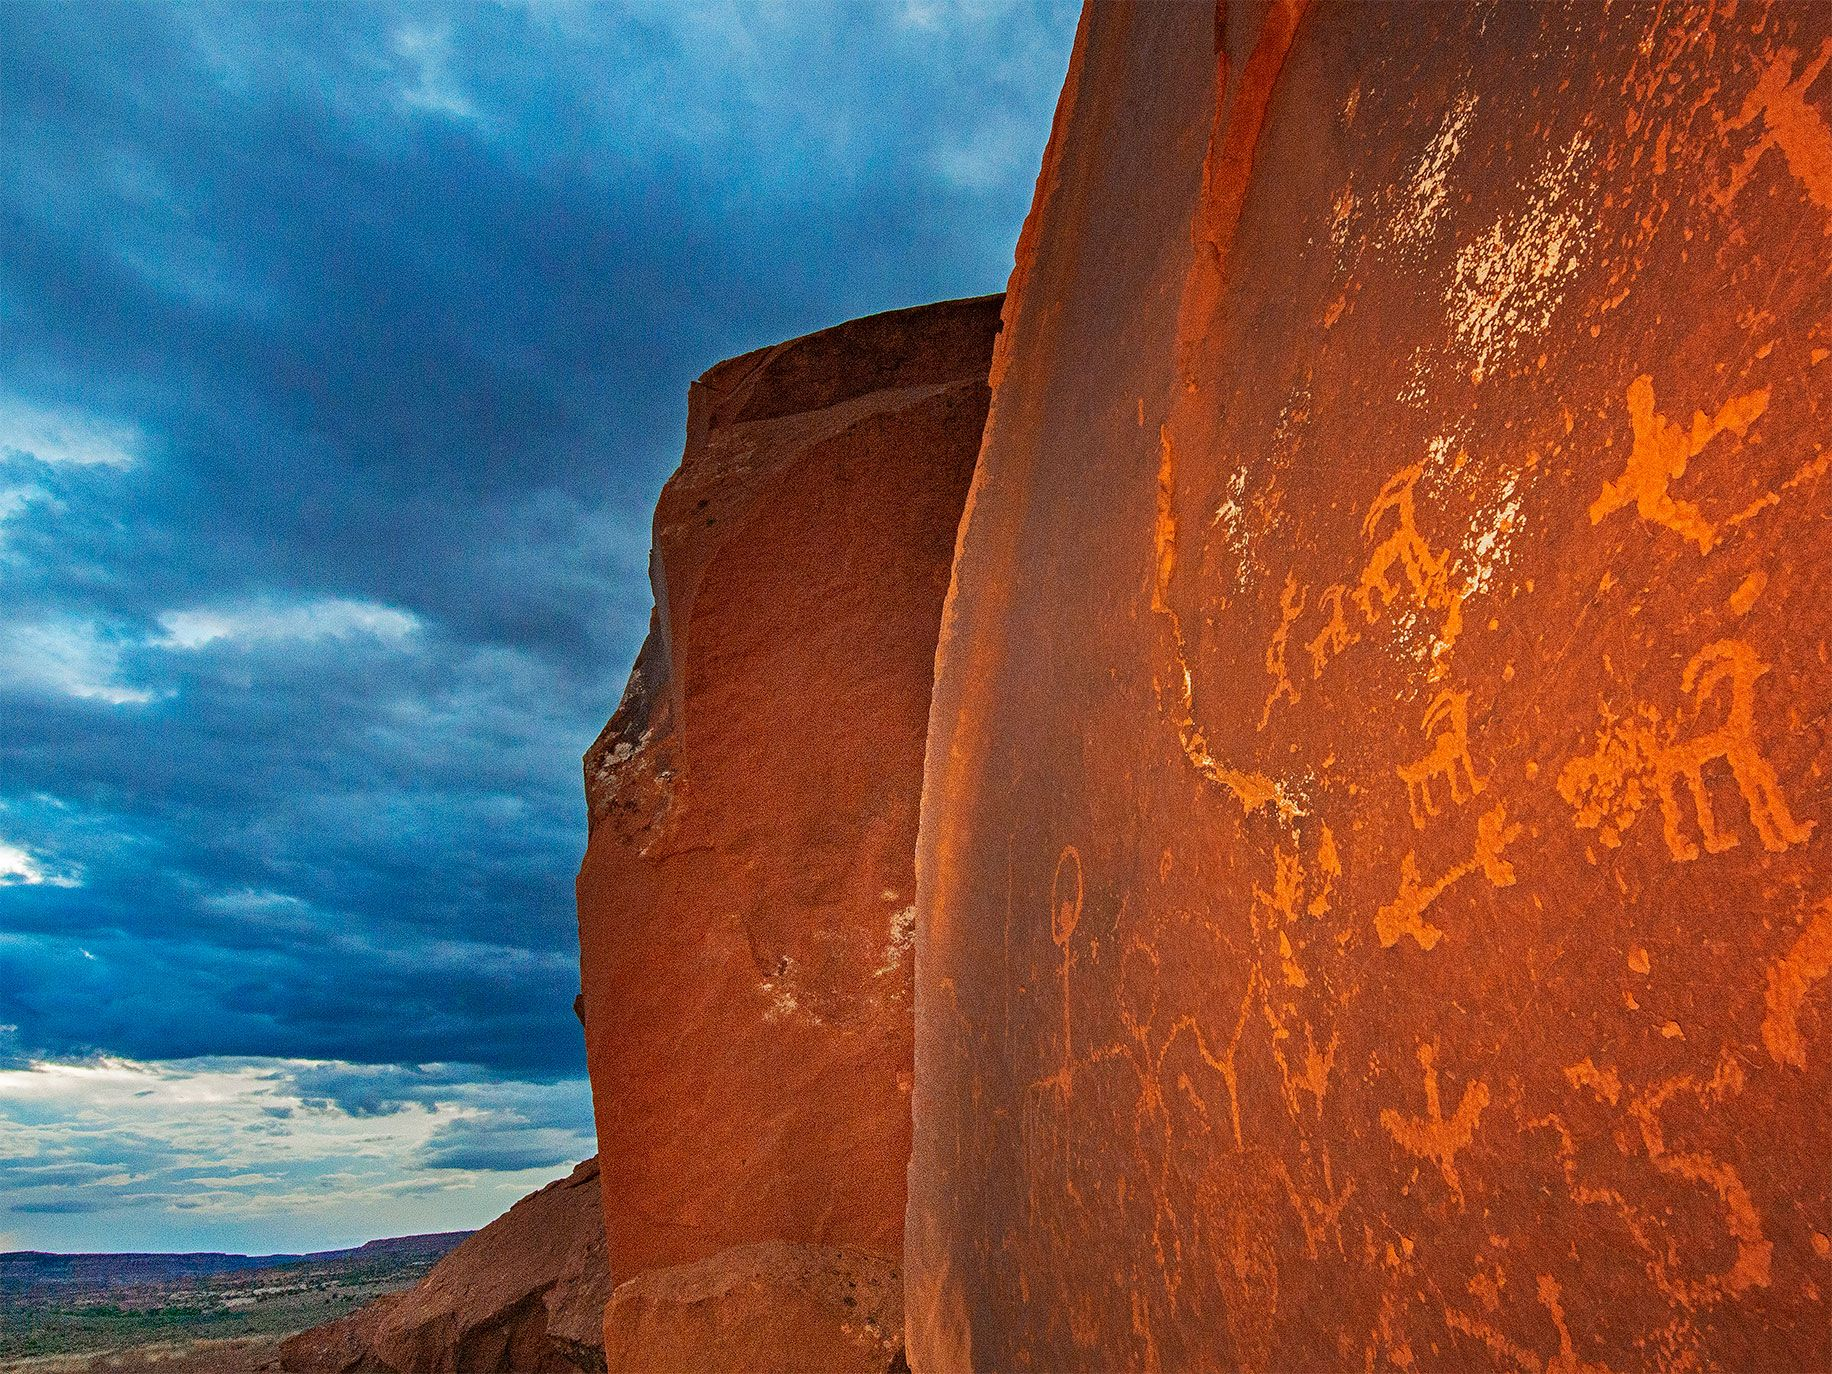 Ancient Native American petroglyphs carved into a sandstone boulder beneath Comb Ridge, which is still protected by Bears Ears National Monument. Countless other archaeological sites now fall outside the monument's new — and contested — boundaries.